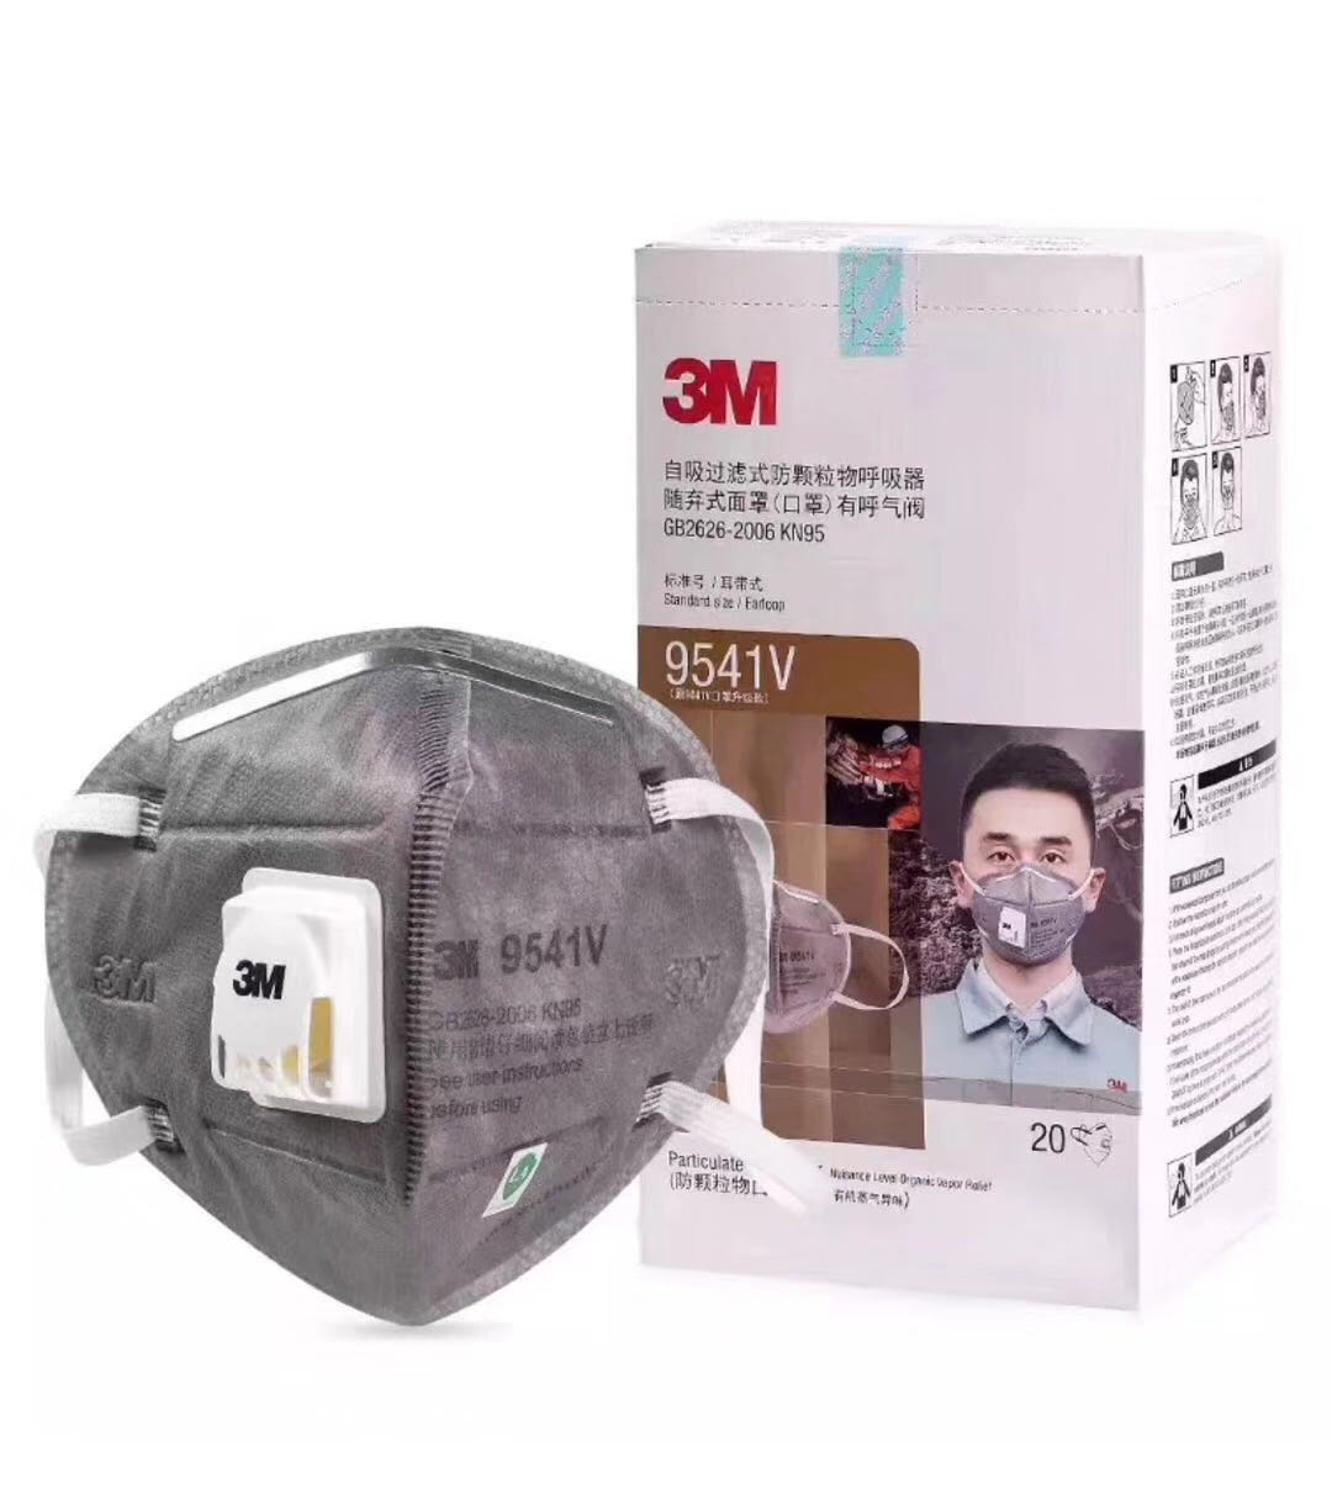 3M 9541V N95 Grey Safety Protective FFP2 Dust Safe Masks Anti-PM 2.5 Sanitary Working Respirator With Filter Structure